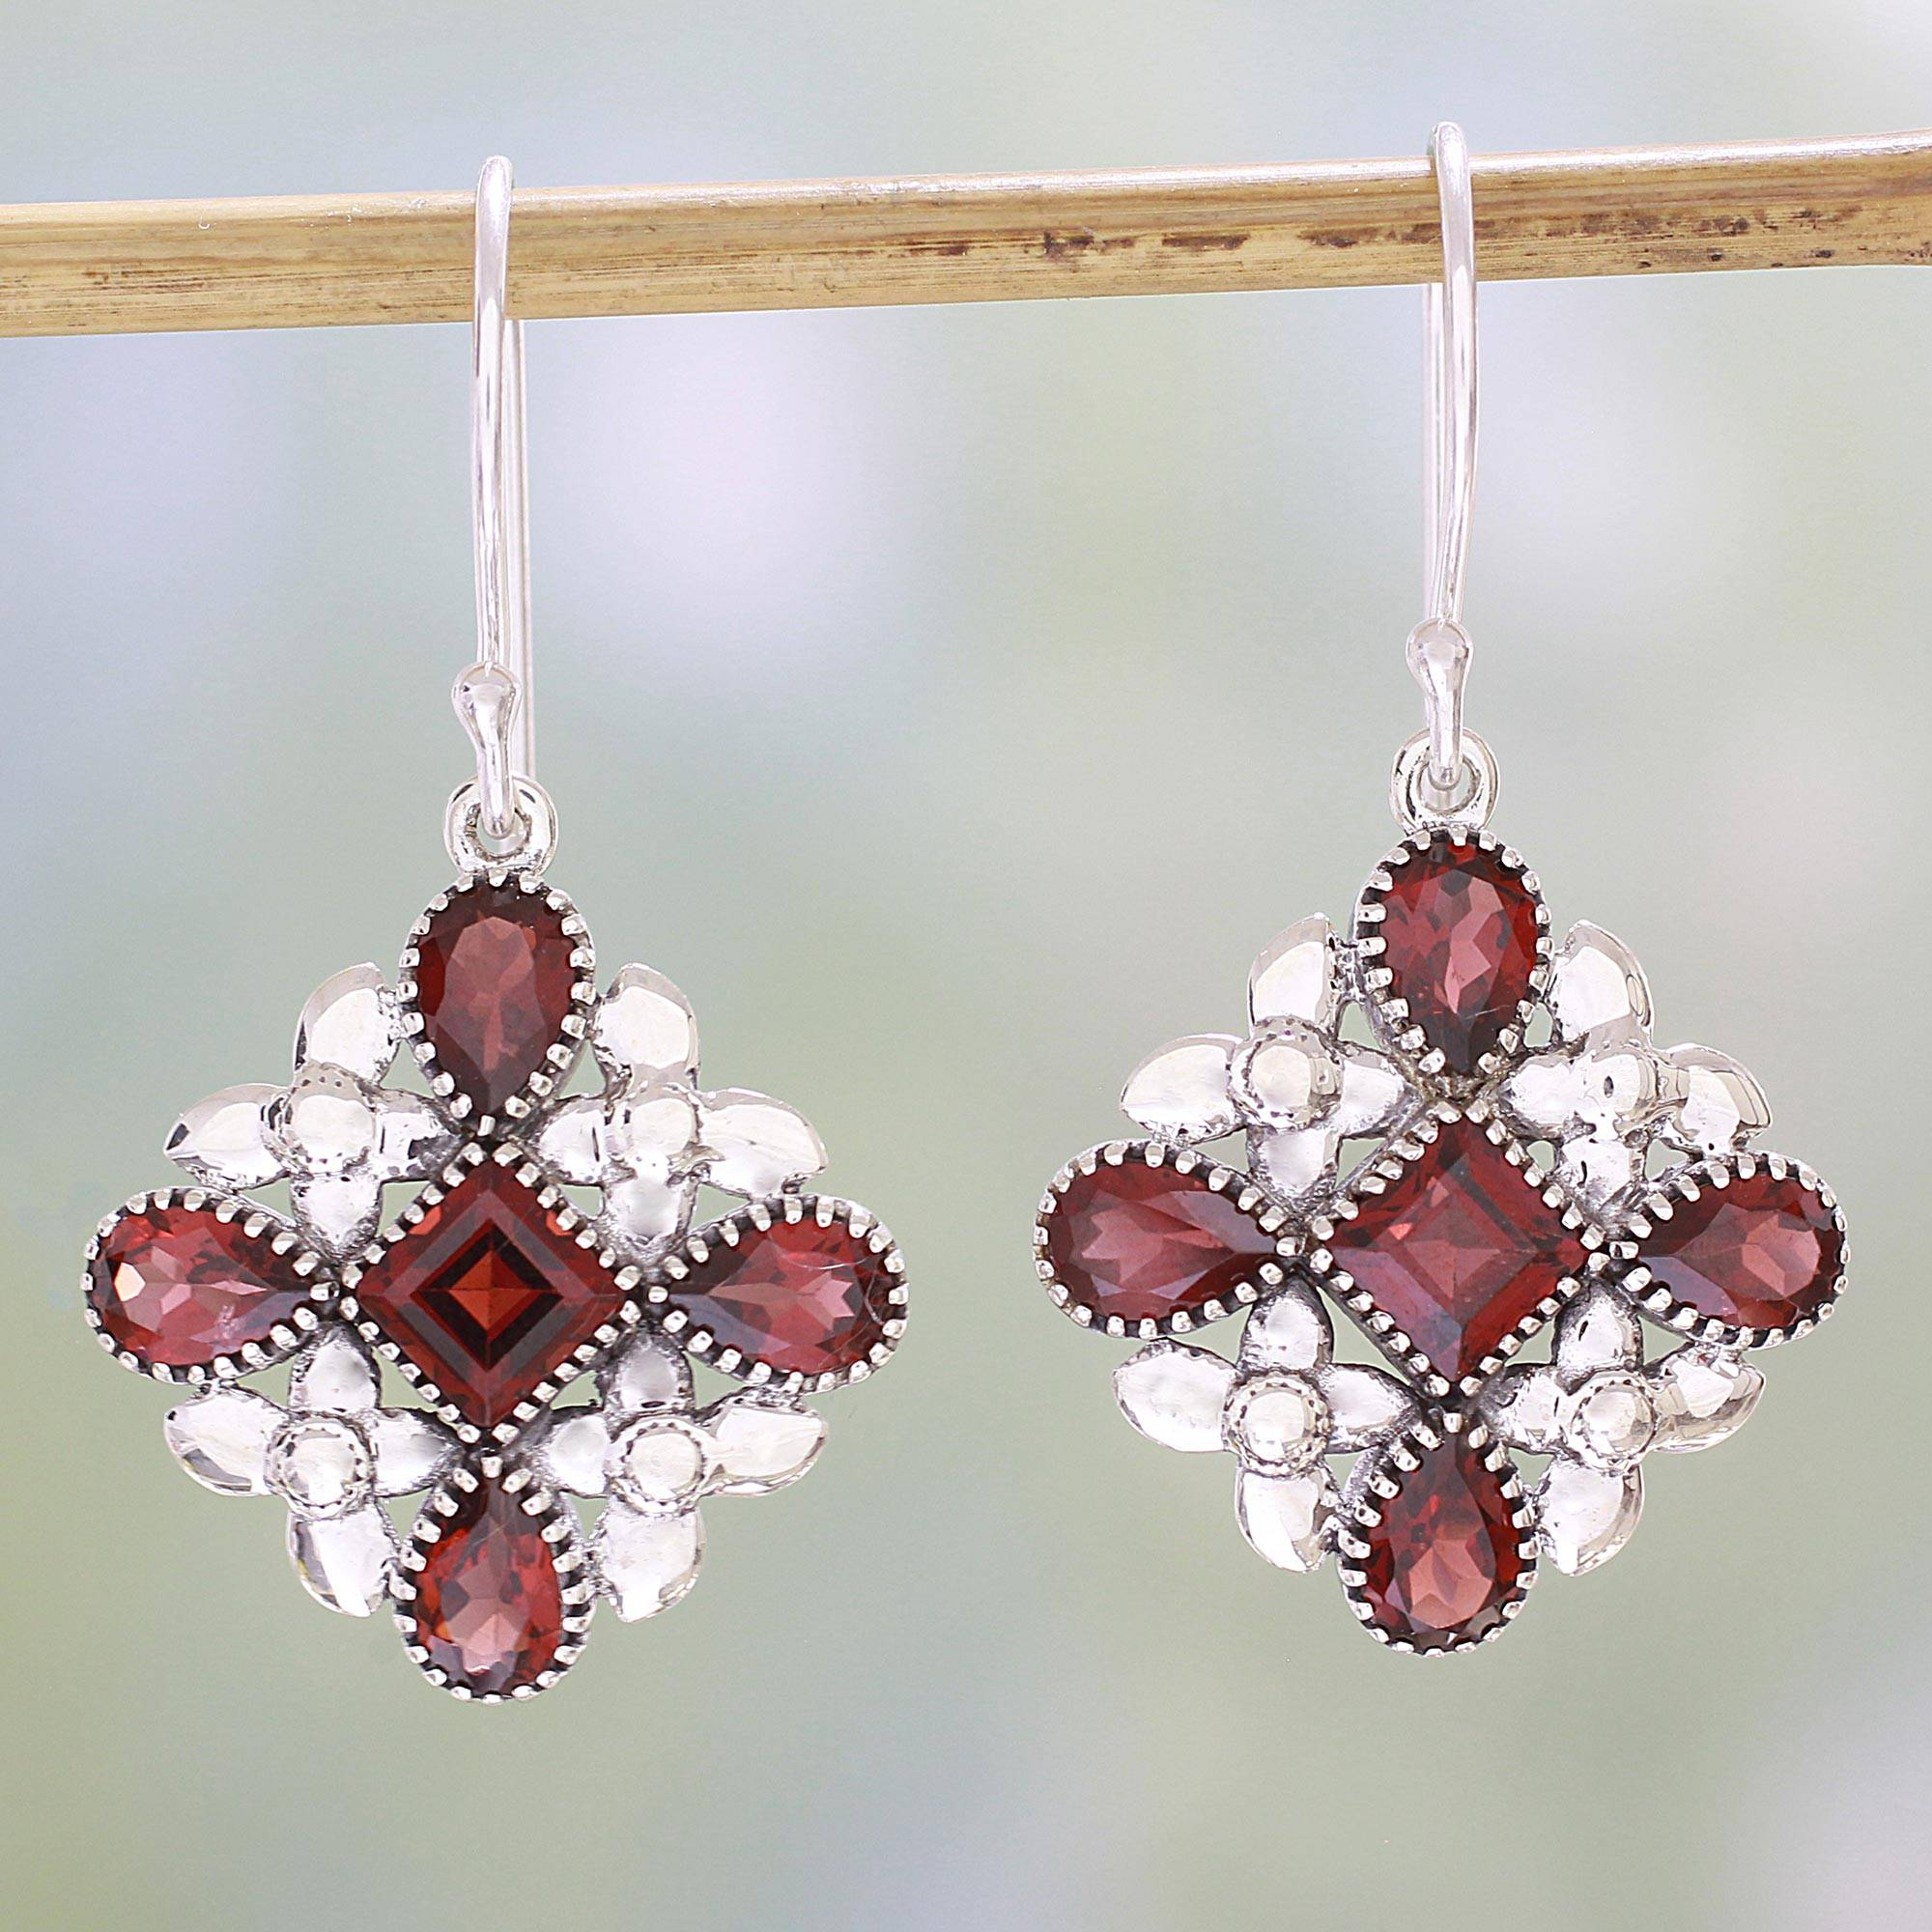 Butterfly Flowers in Red Garnet and Sterling Silver Dangle Earrings from India Garnet: january's Birthstone